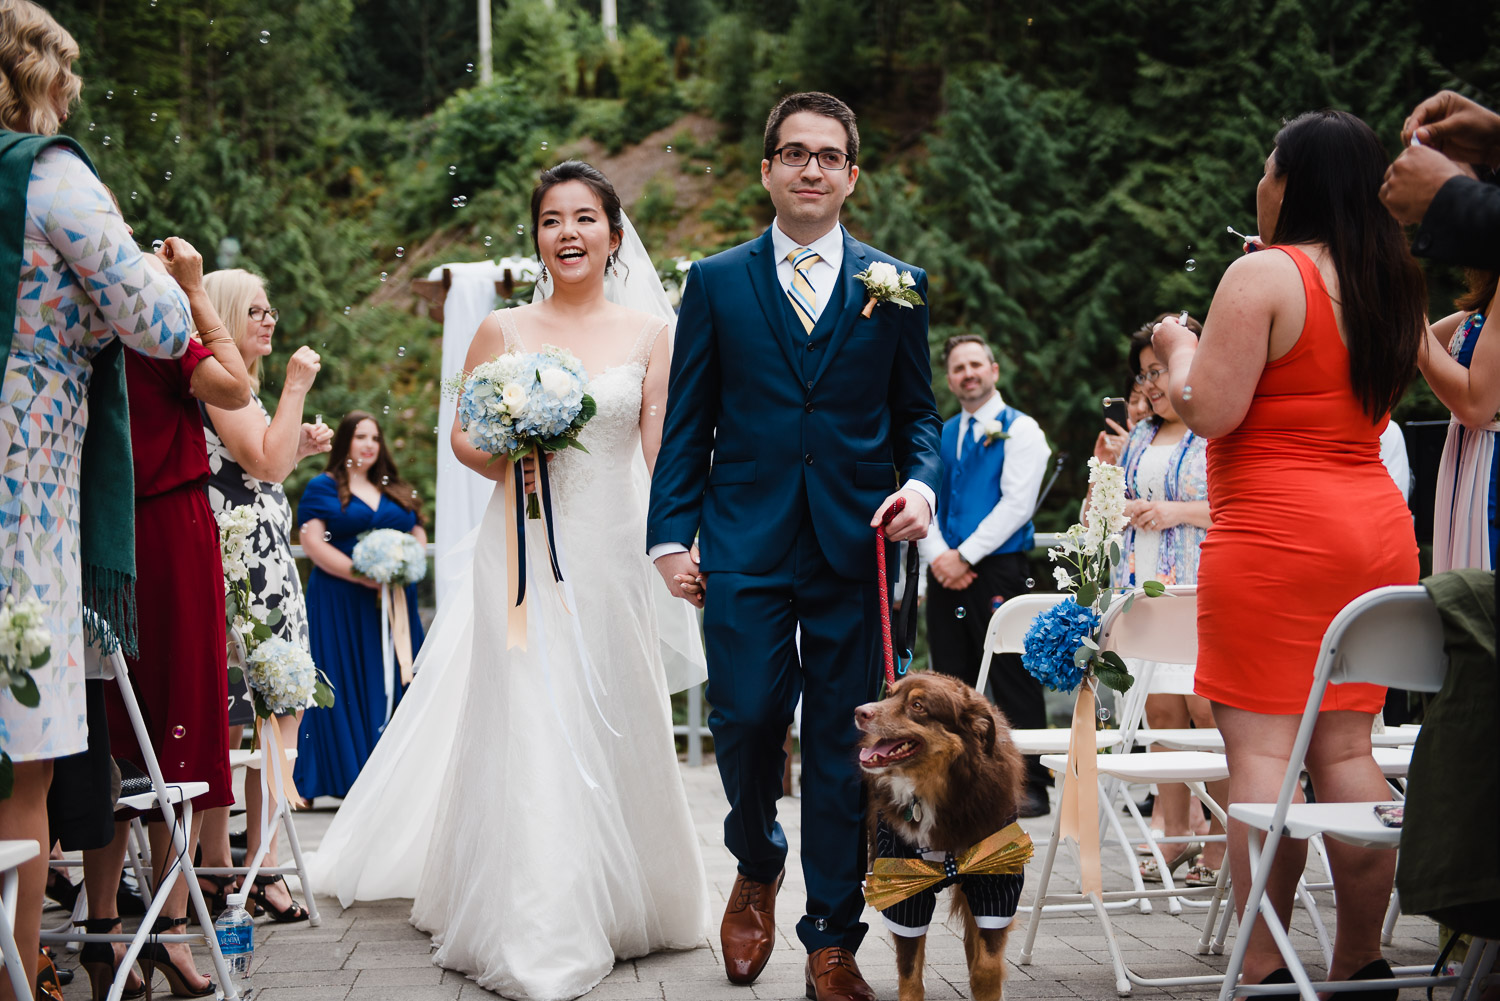 Furry Creek Wedding-36.jpg